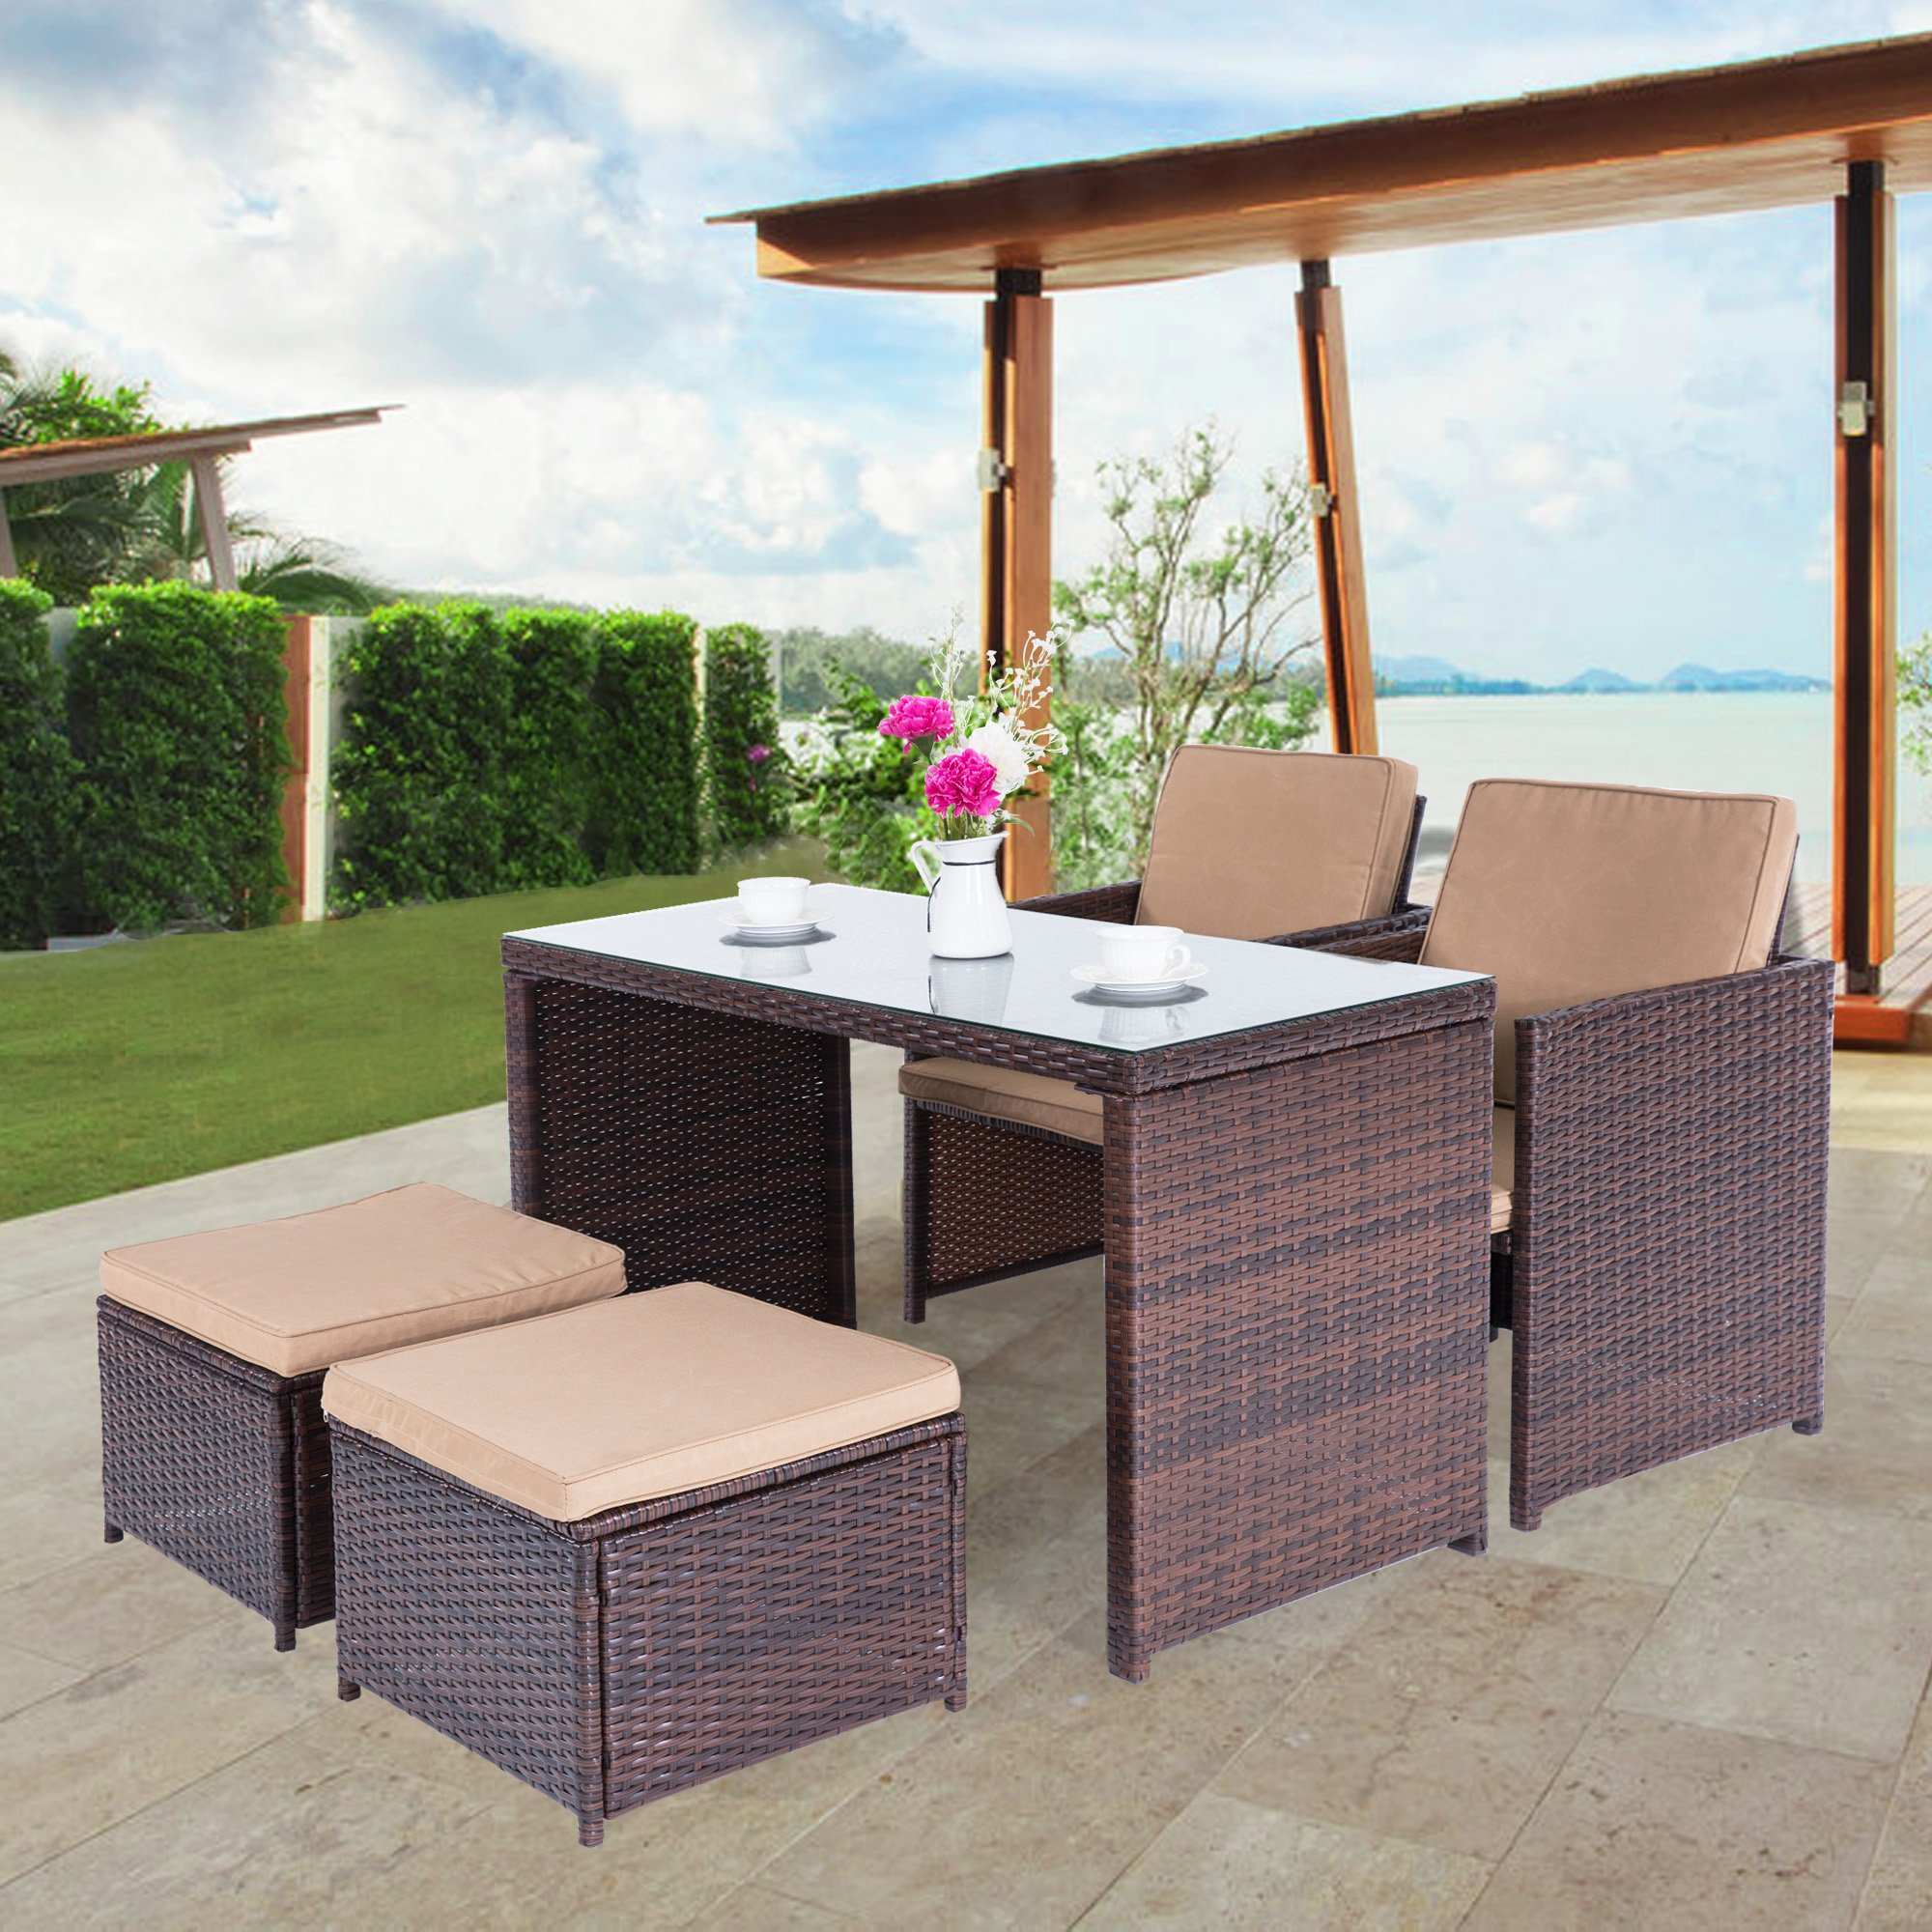 Cloud Mountain Outdoor 5 Piece Rattan Wicker Furniture Bar Set Dining Set Cushioned Patio Furniture Set Space Saving - 1 Patio Dining Table & 4 Conversation Bistro Set, Brown by Cloud Mountain (Image #2)